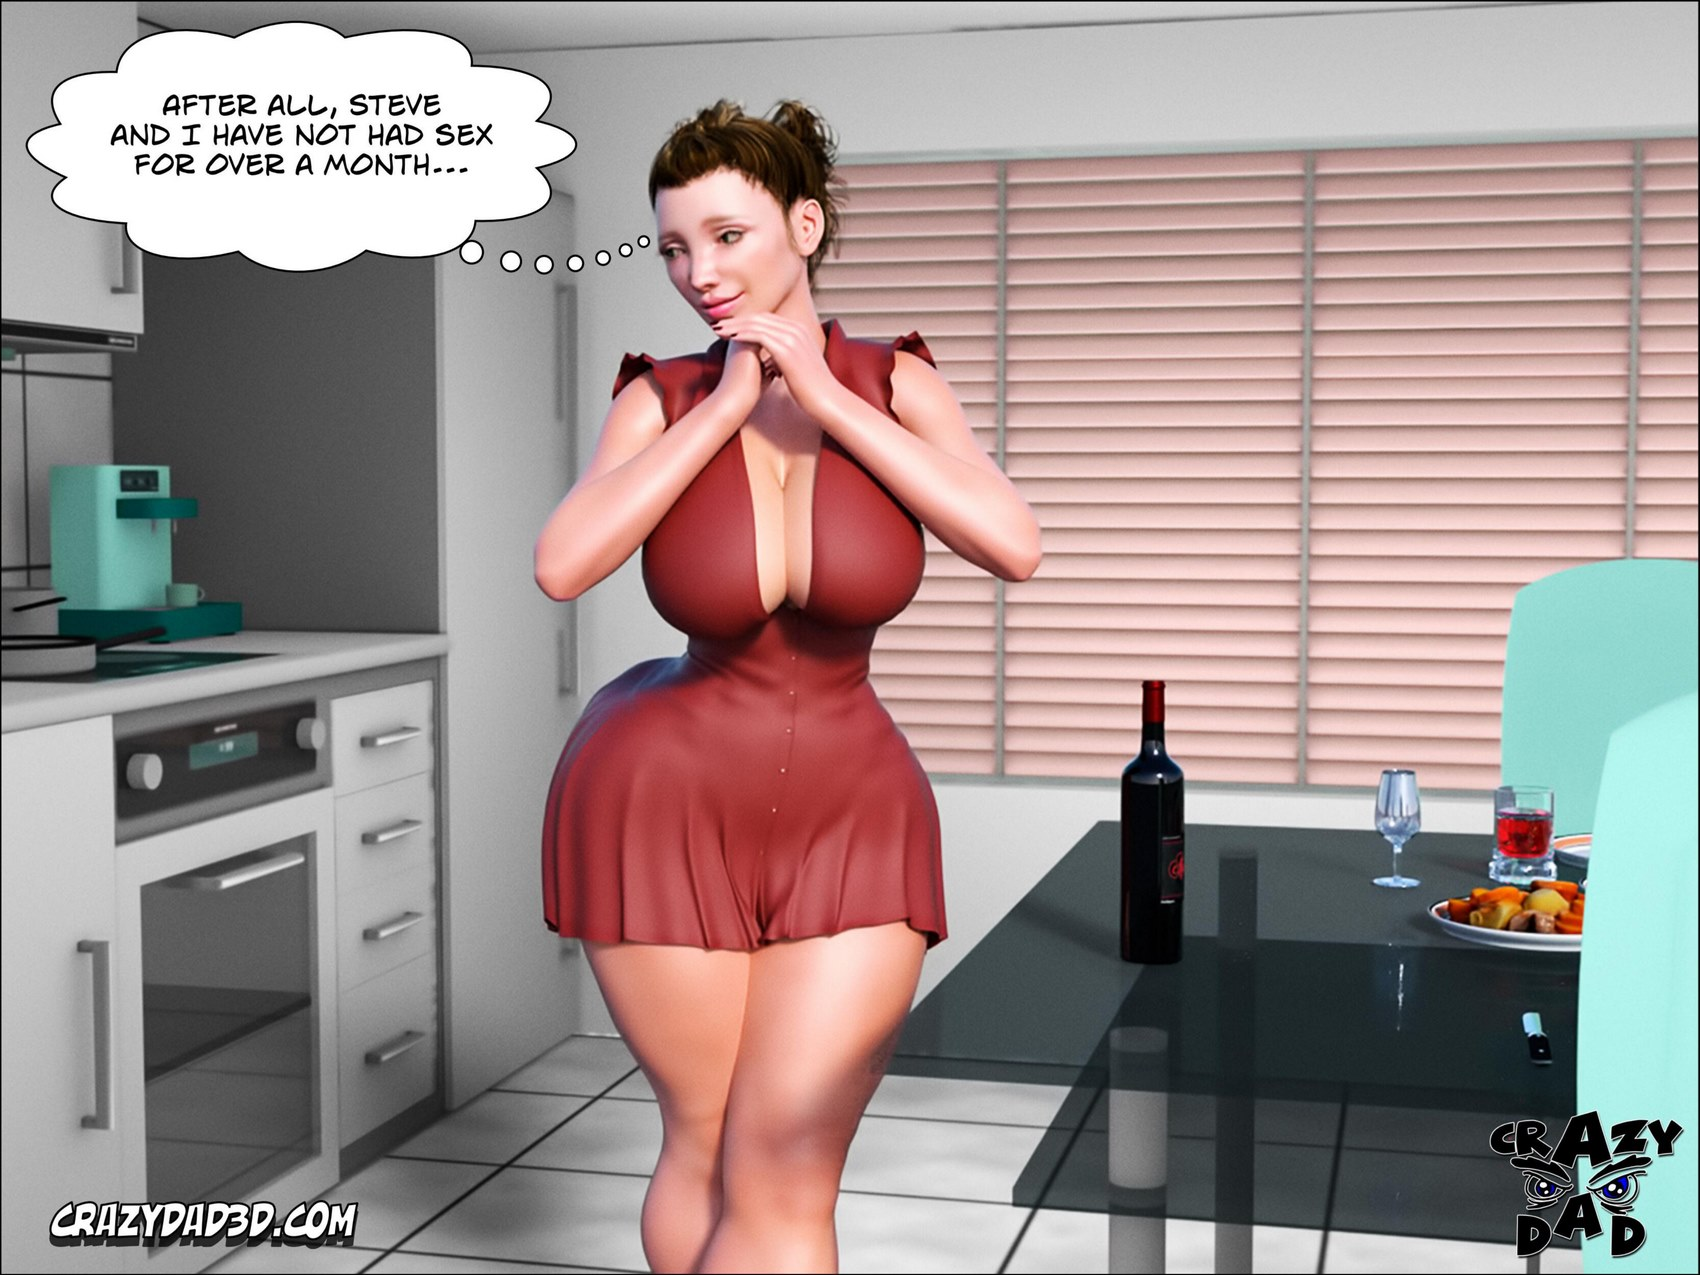 Father In Law At Home 3- CrazyDad3D